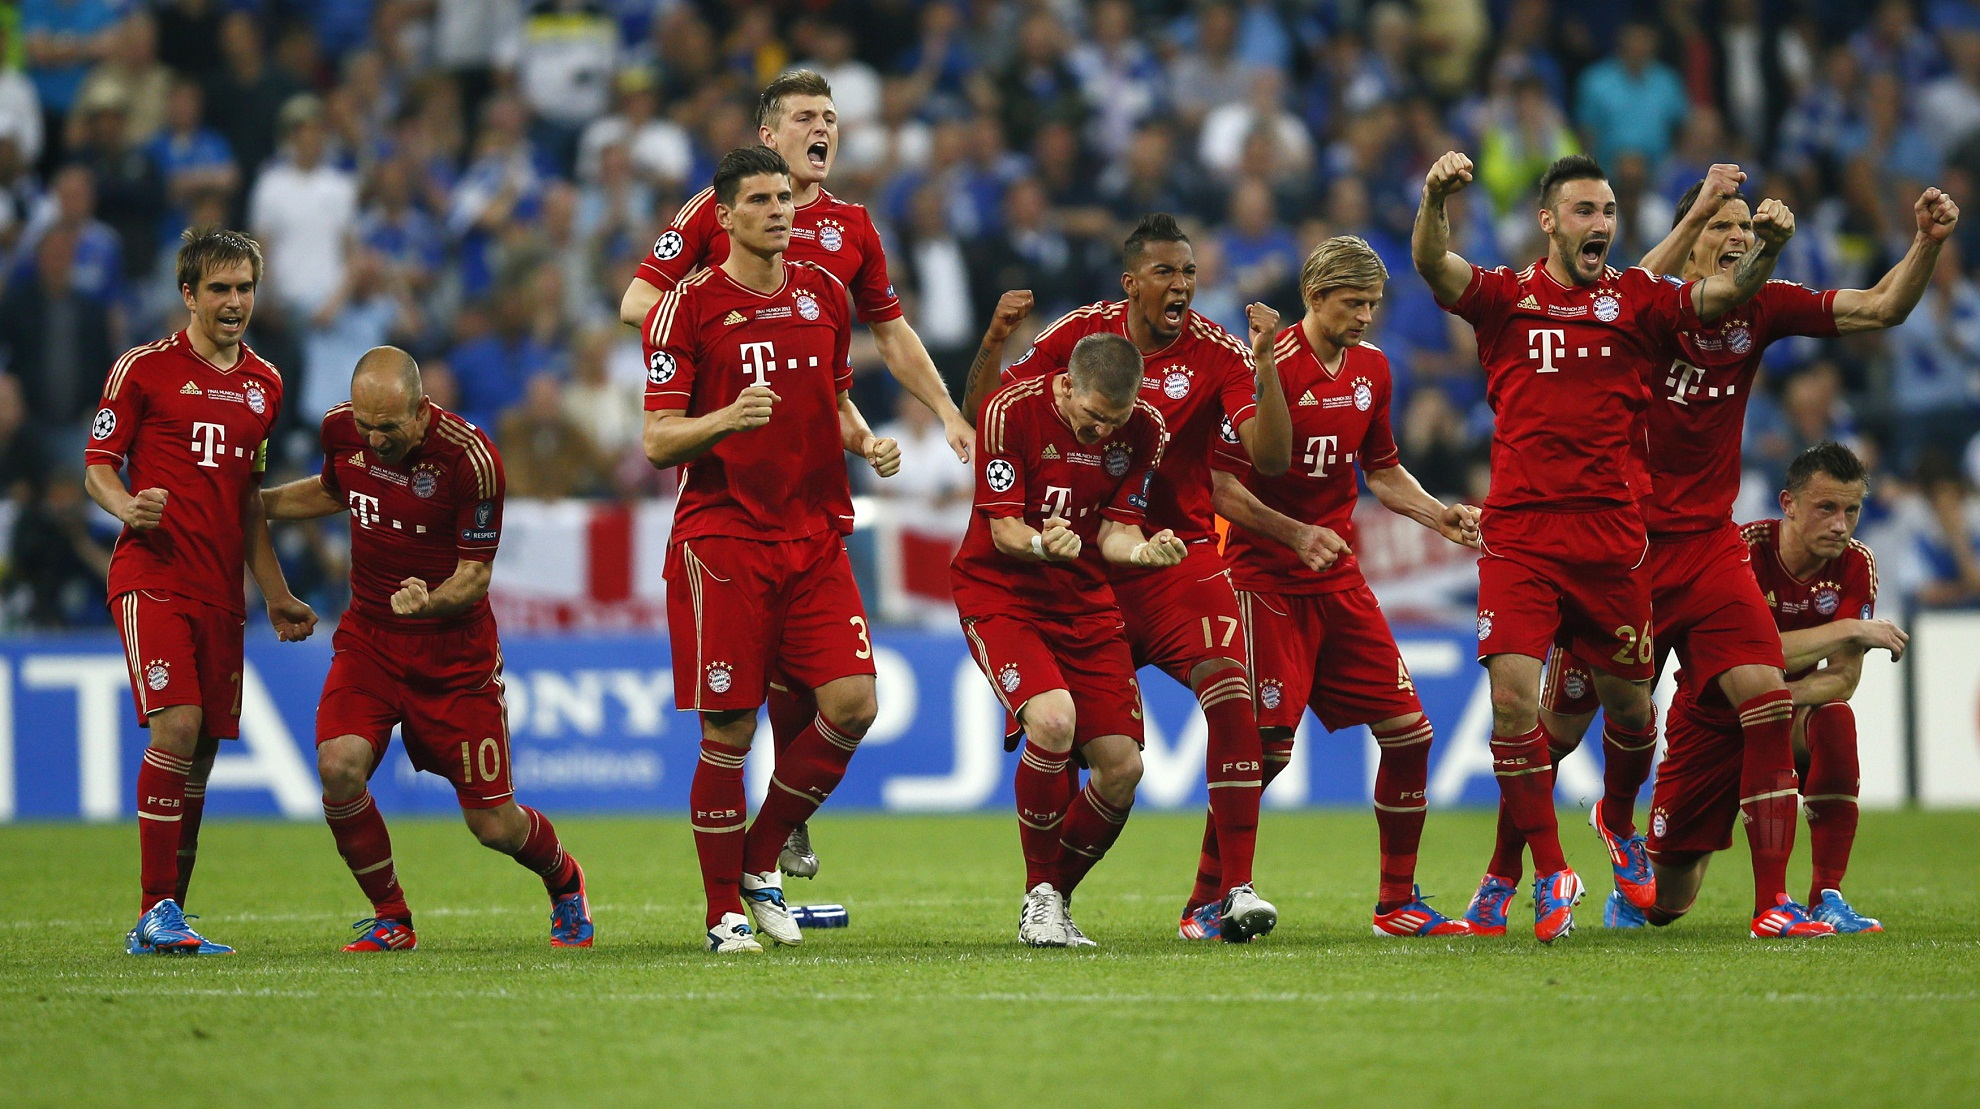 Bayern Munich players celebrate during a penalty shoot-out ...